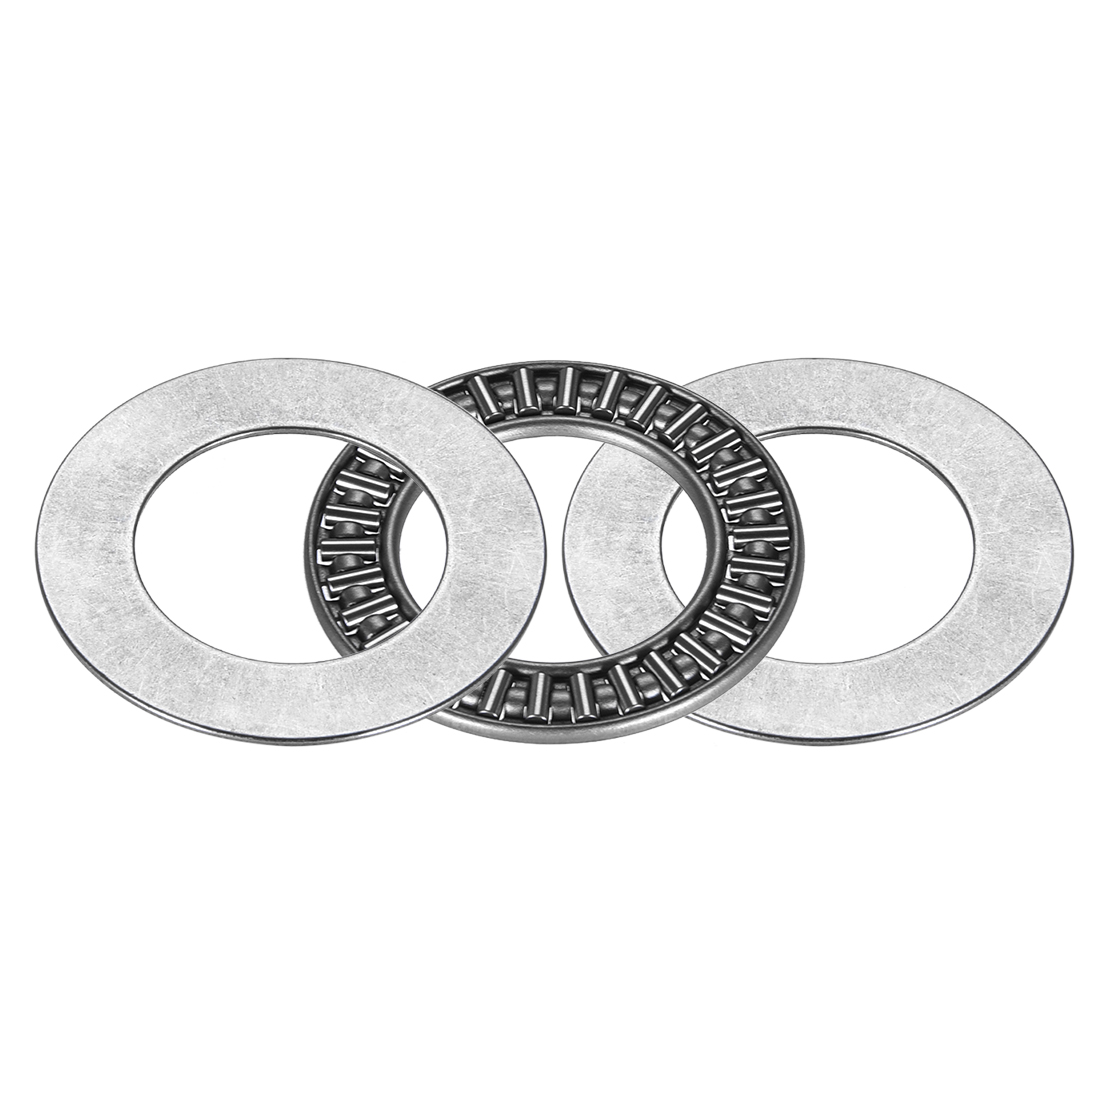 AXK2542+2AS Needle Roller Thrust Bearings with 2 Washers, 25x42x4mm Bearing